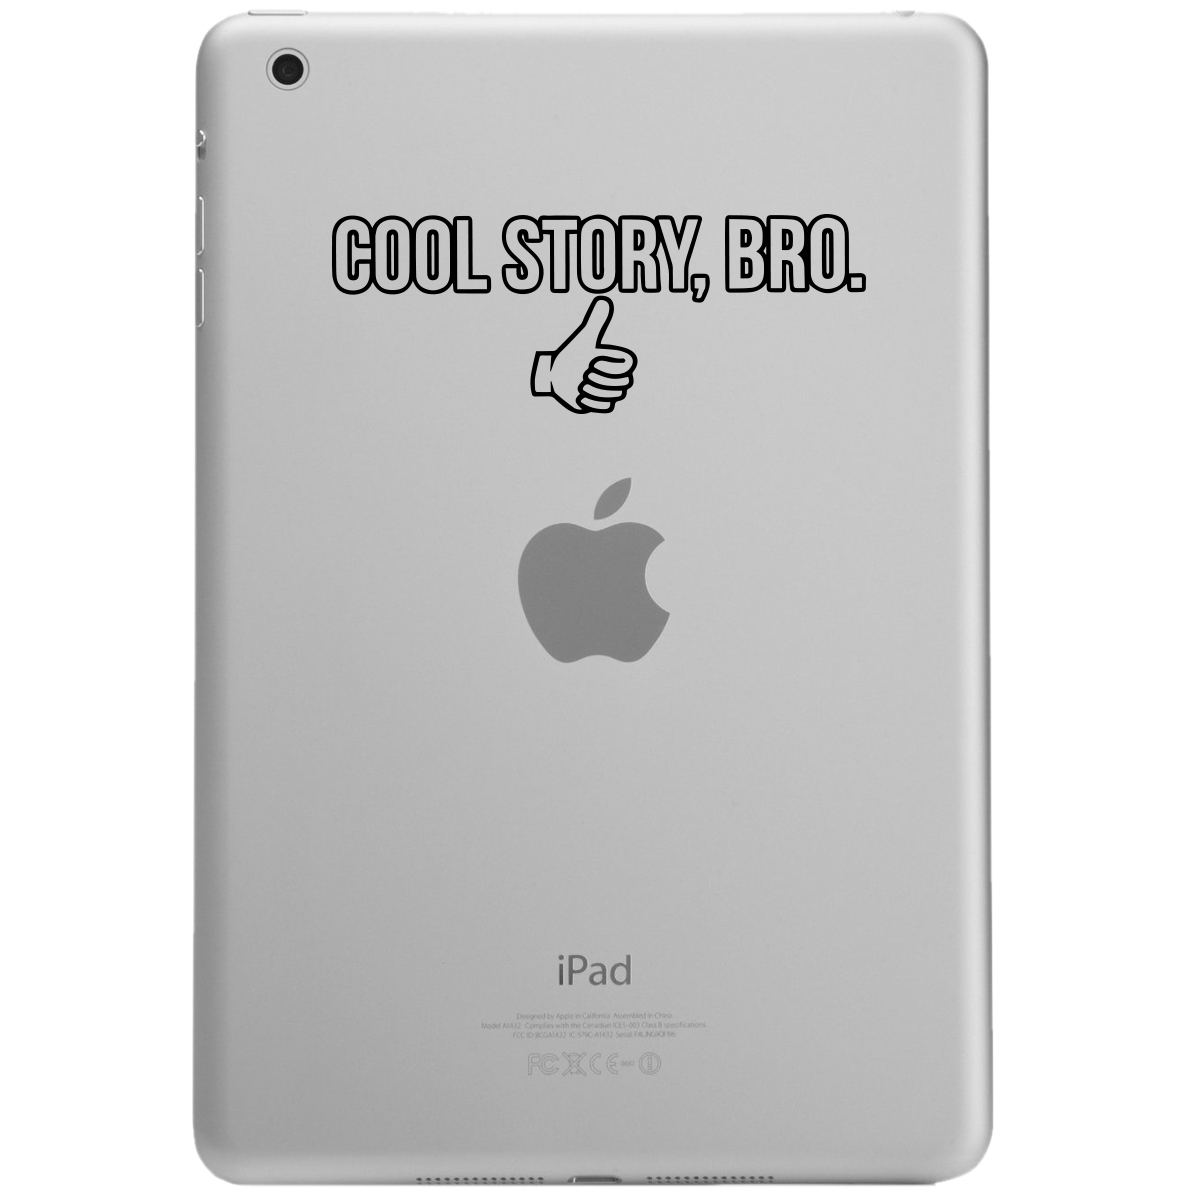 Funny Thumbs Up Cool Story Bro iPad Tablet Vinyl Sticker Decal